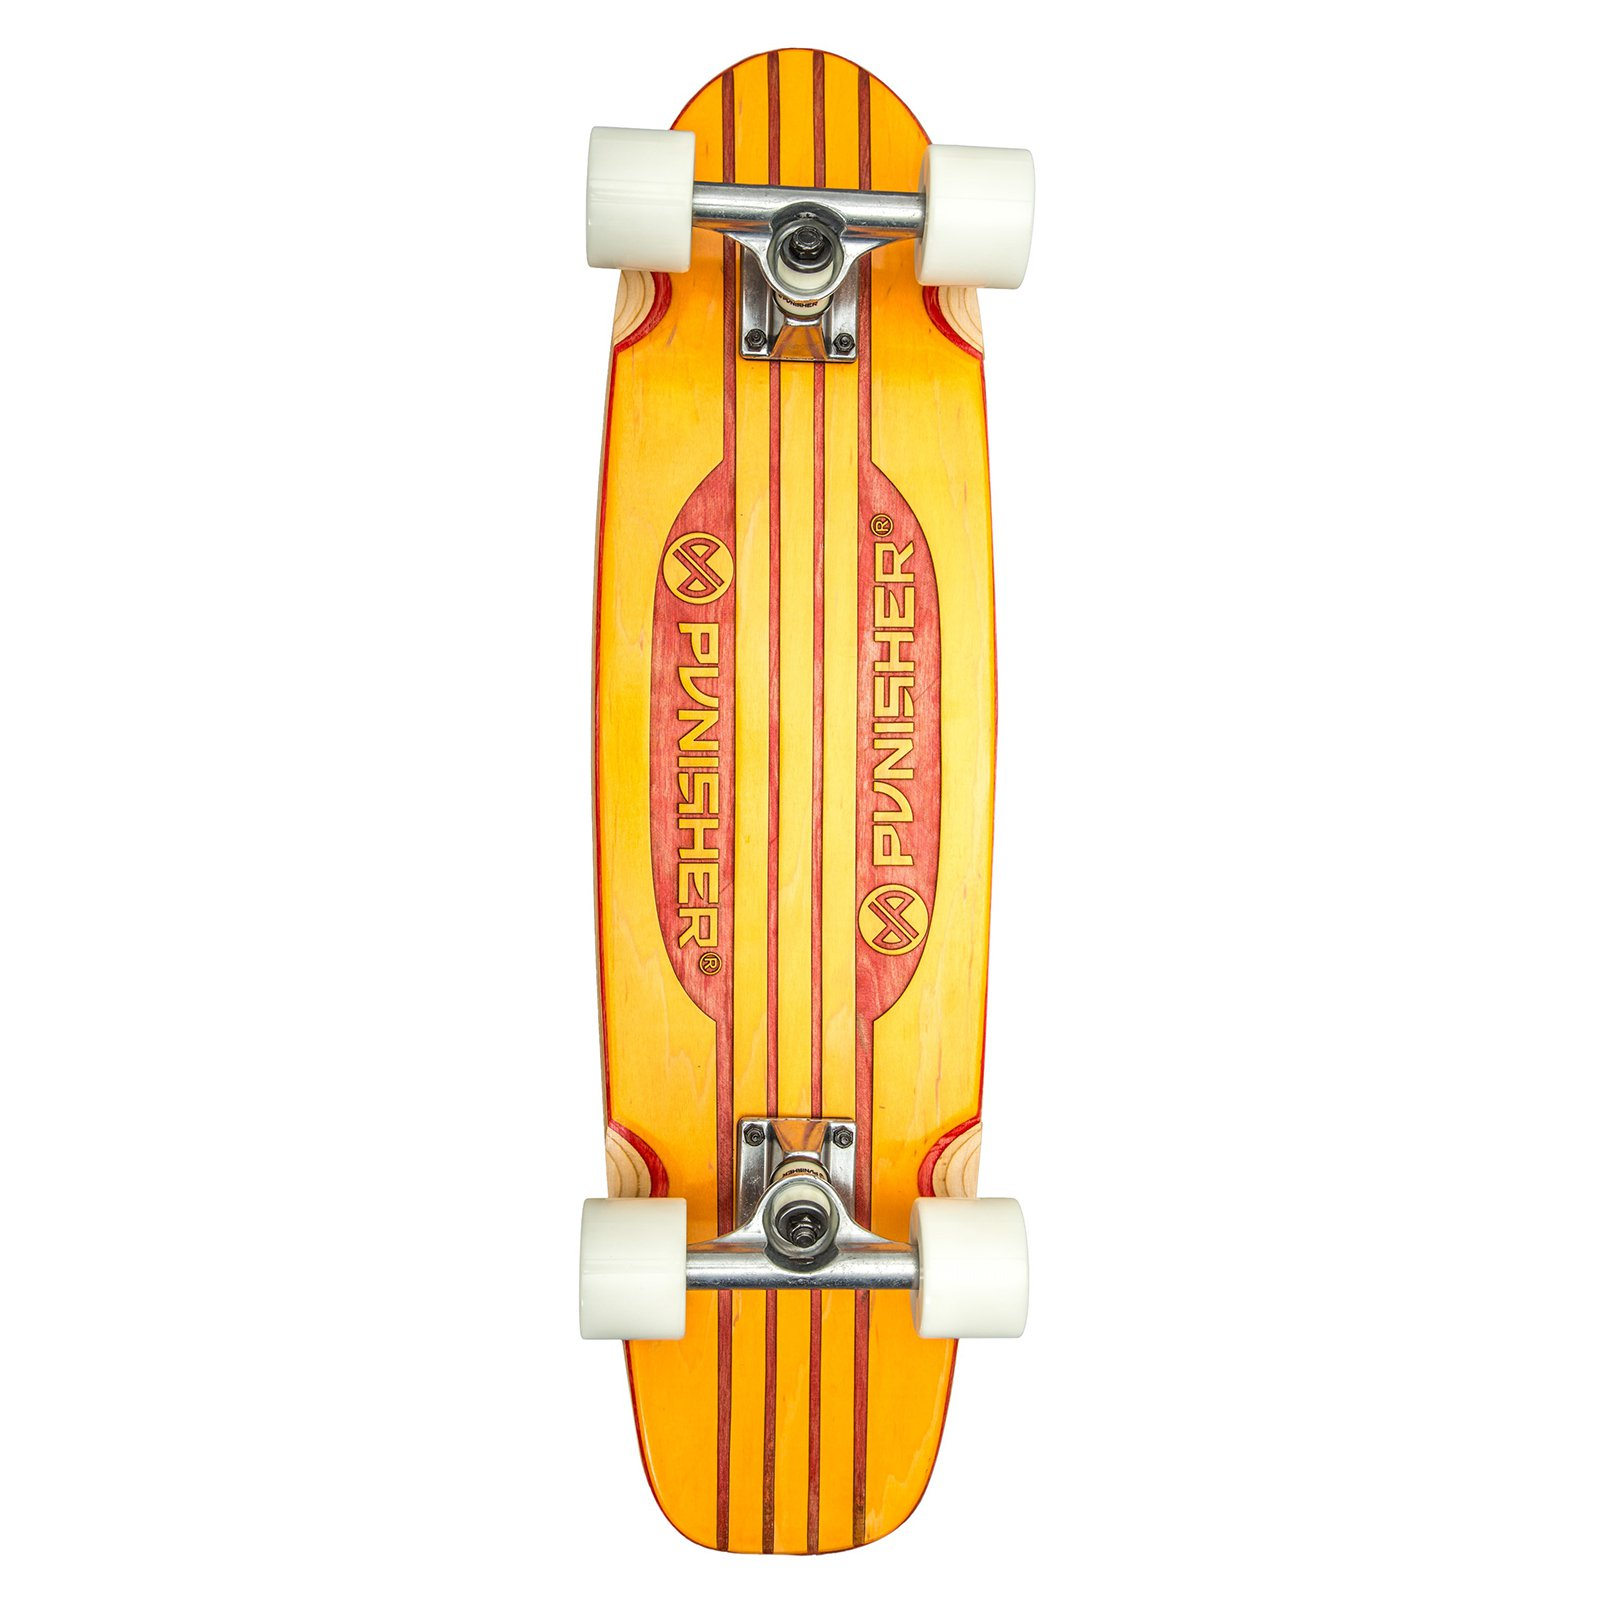 "Punisher Skateboards Special Edition Engraved 28"" Longboard Skateboard, Orange by Punisher Skateboards"